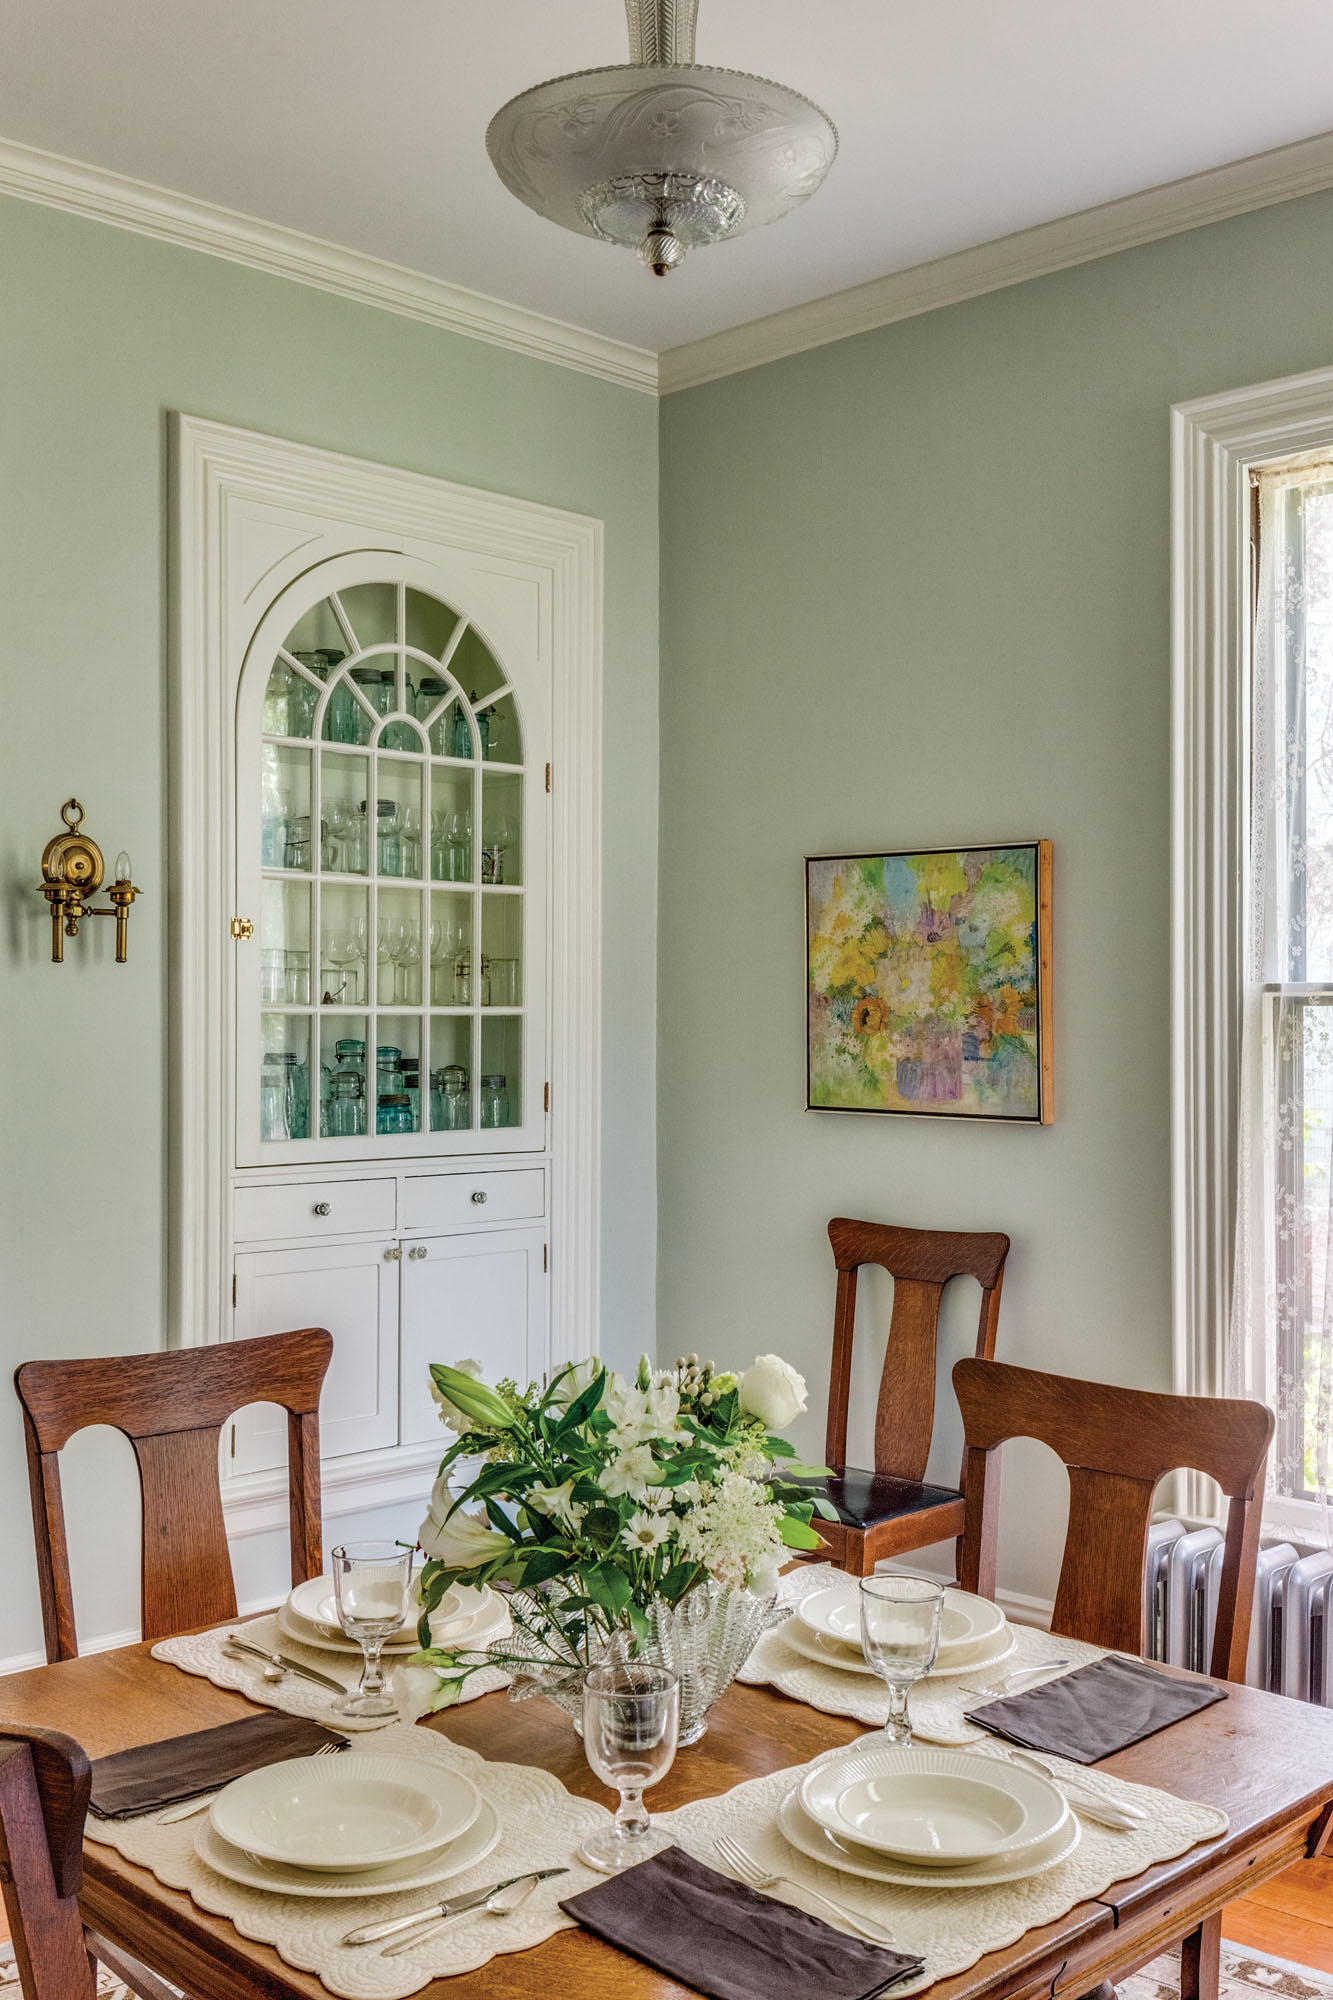 Italianate dining room, built-in hutch